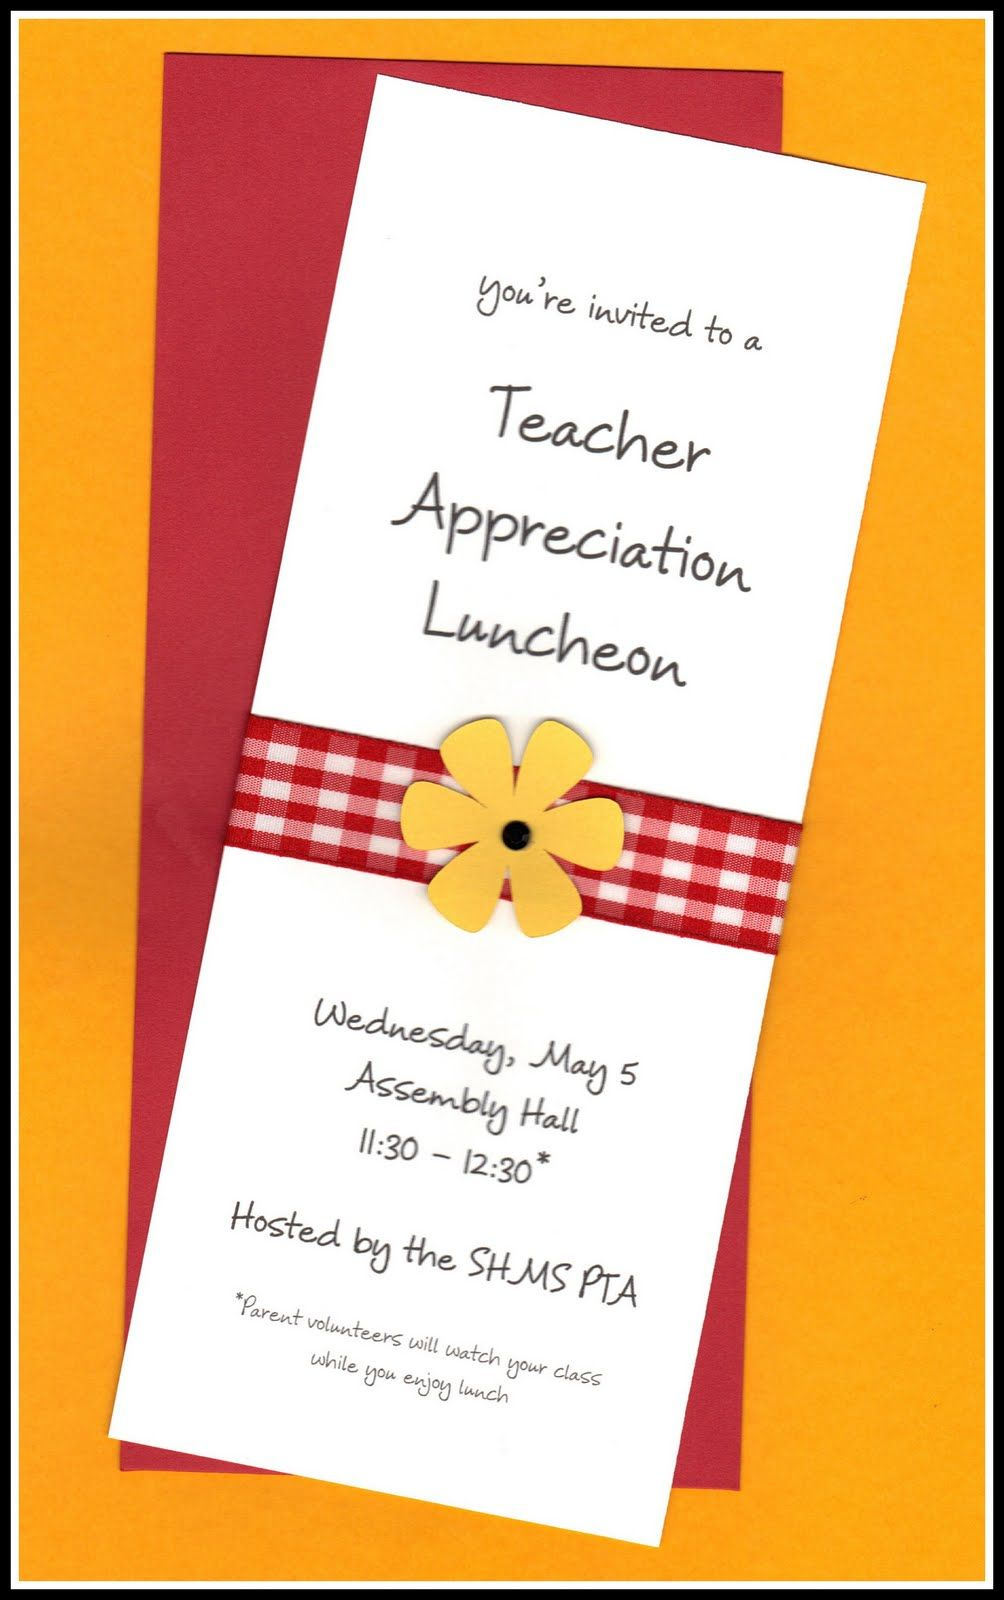 Teacher Appreciation Invitation Wording - Teacher